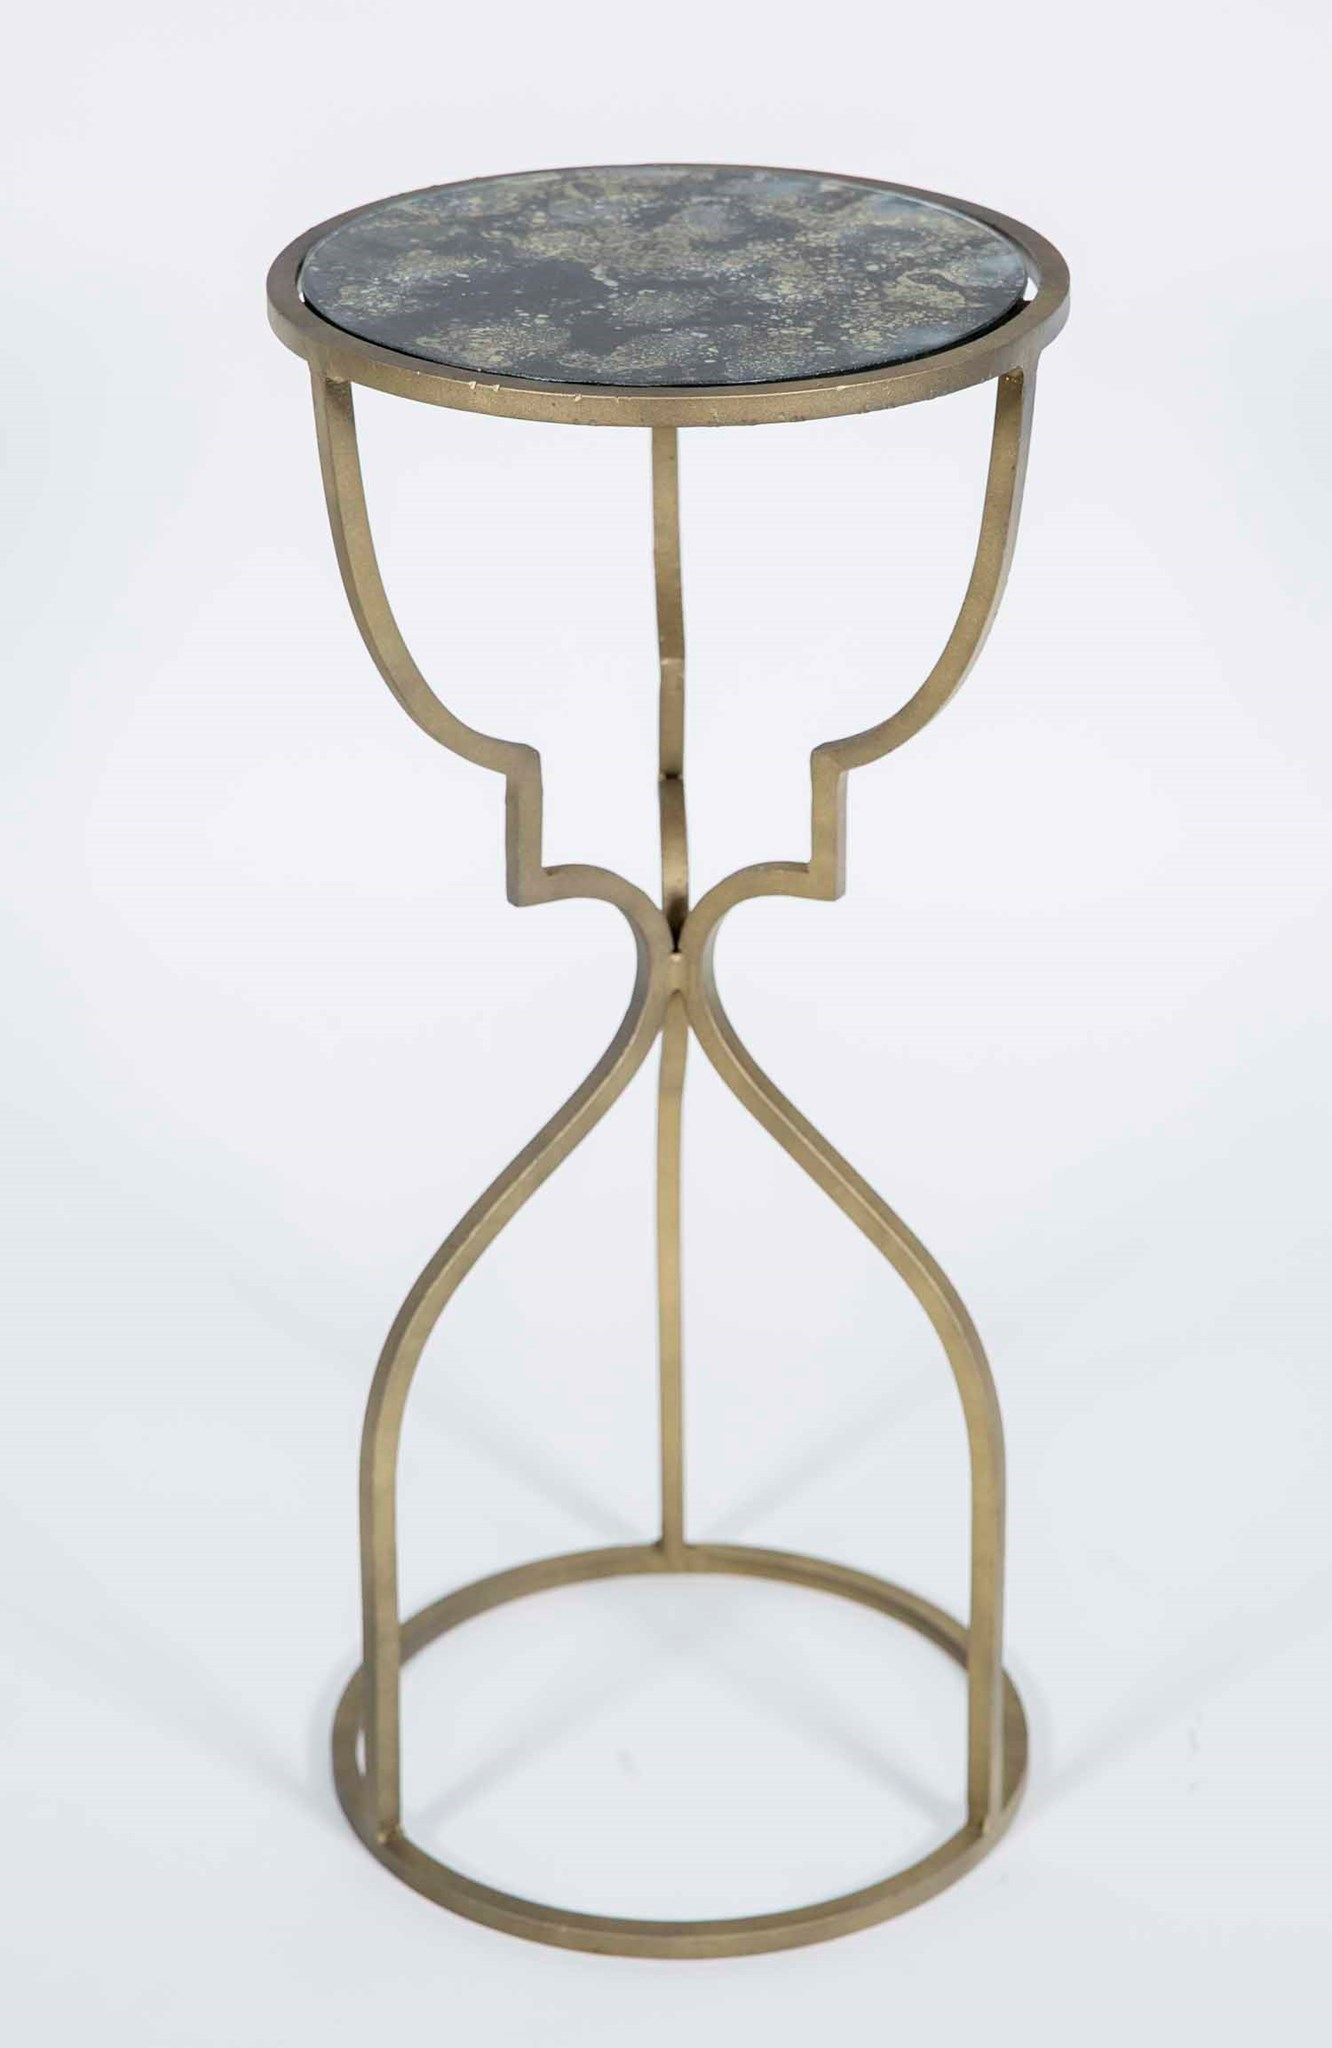 accent tables prima design source glass agate table gold decorative accessories metal bedroom side white round linens parsons end black wicker patio furniture dale tiffany crystal